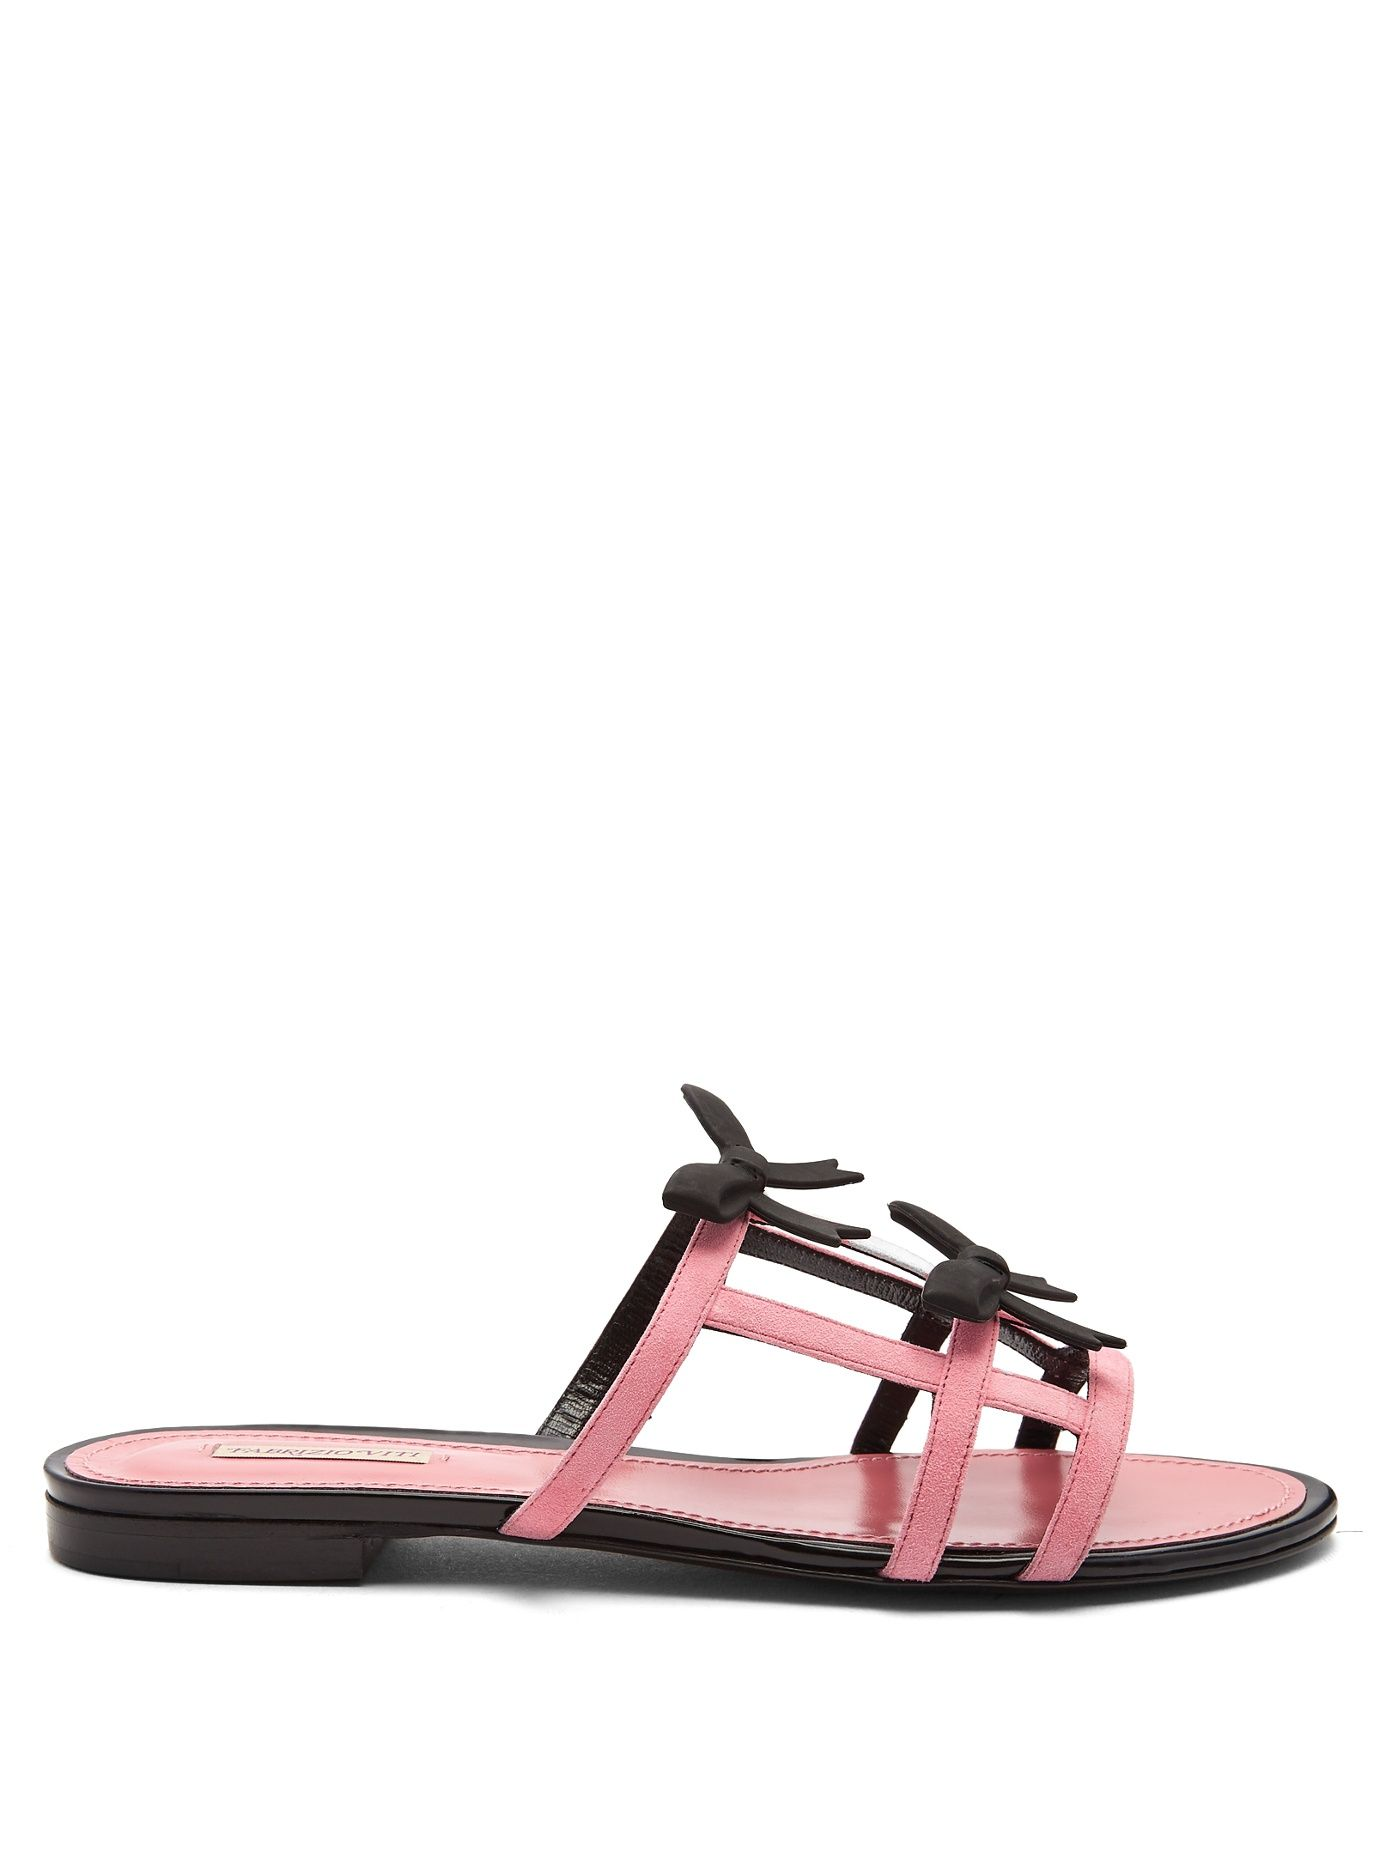 Pick A Best For Sale City Bow suede sandals Fabrizio Viti Buy Cheap Manchester Discount 100% Guaranteed Low Price Fee Shipping Cheap Footlocker Finishline mbo3Vmn